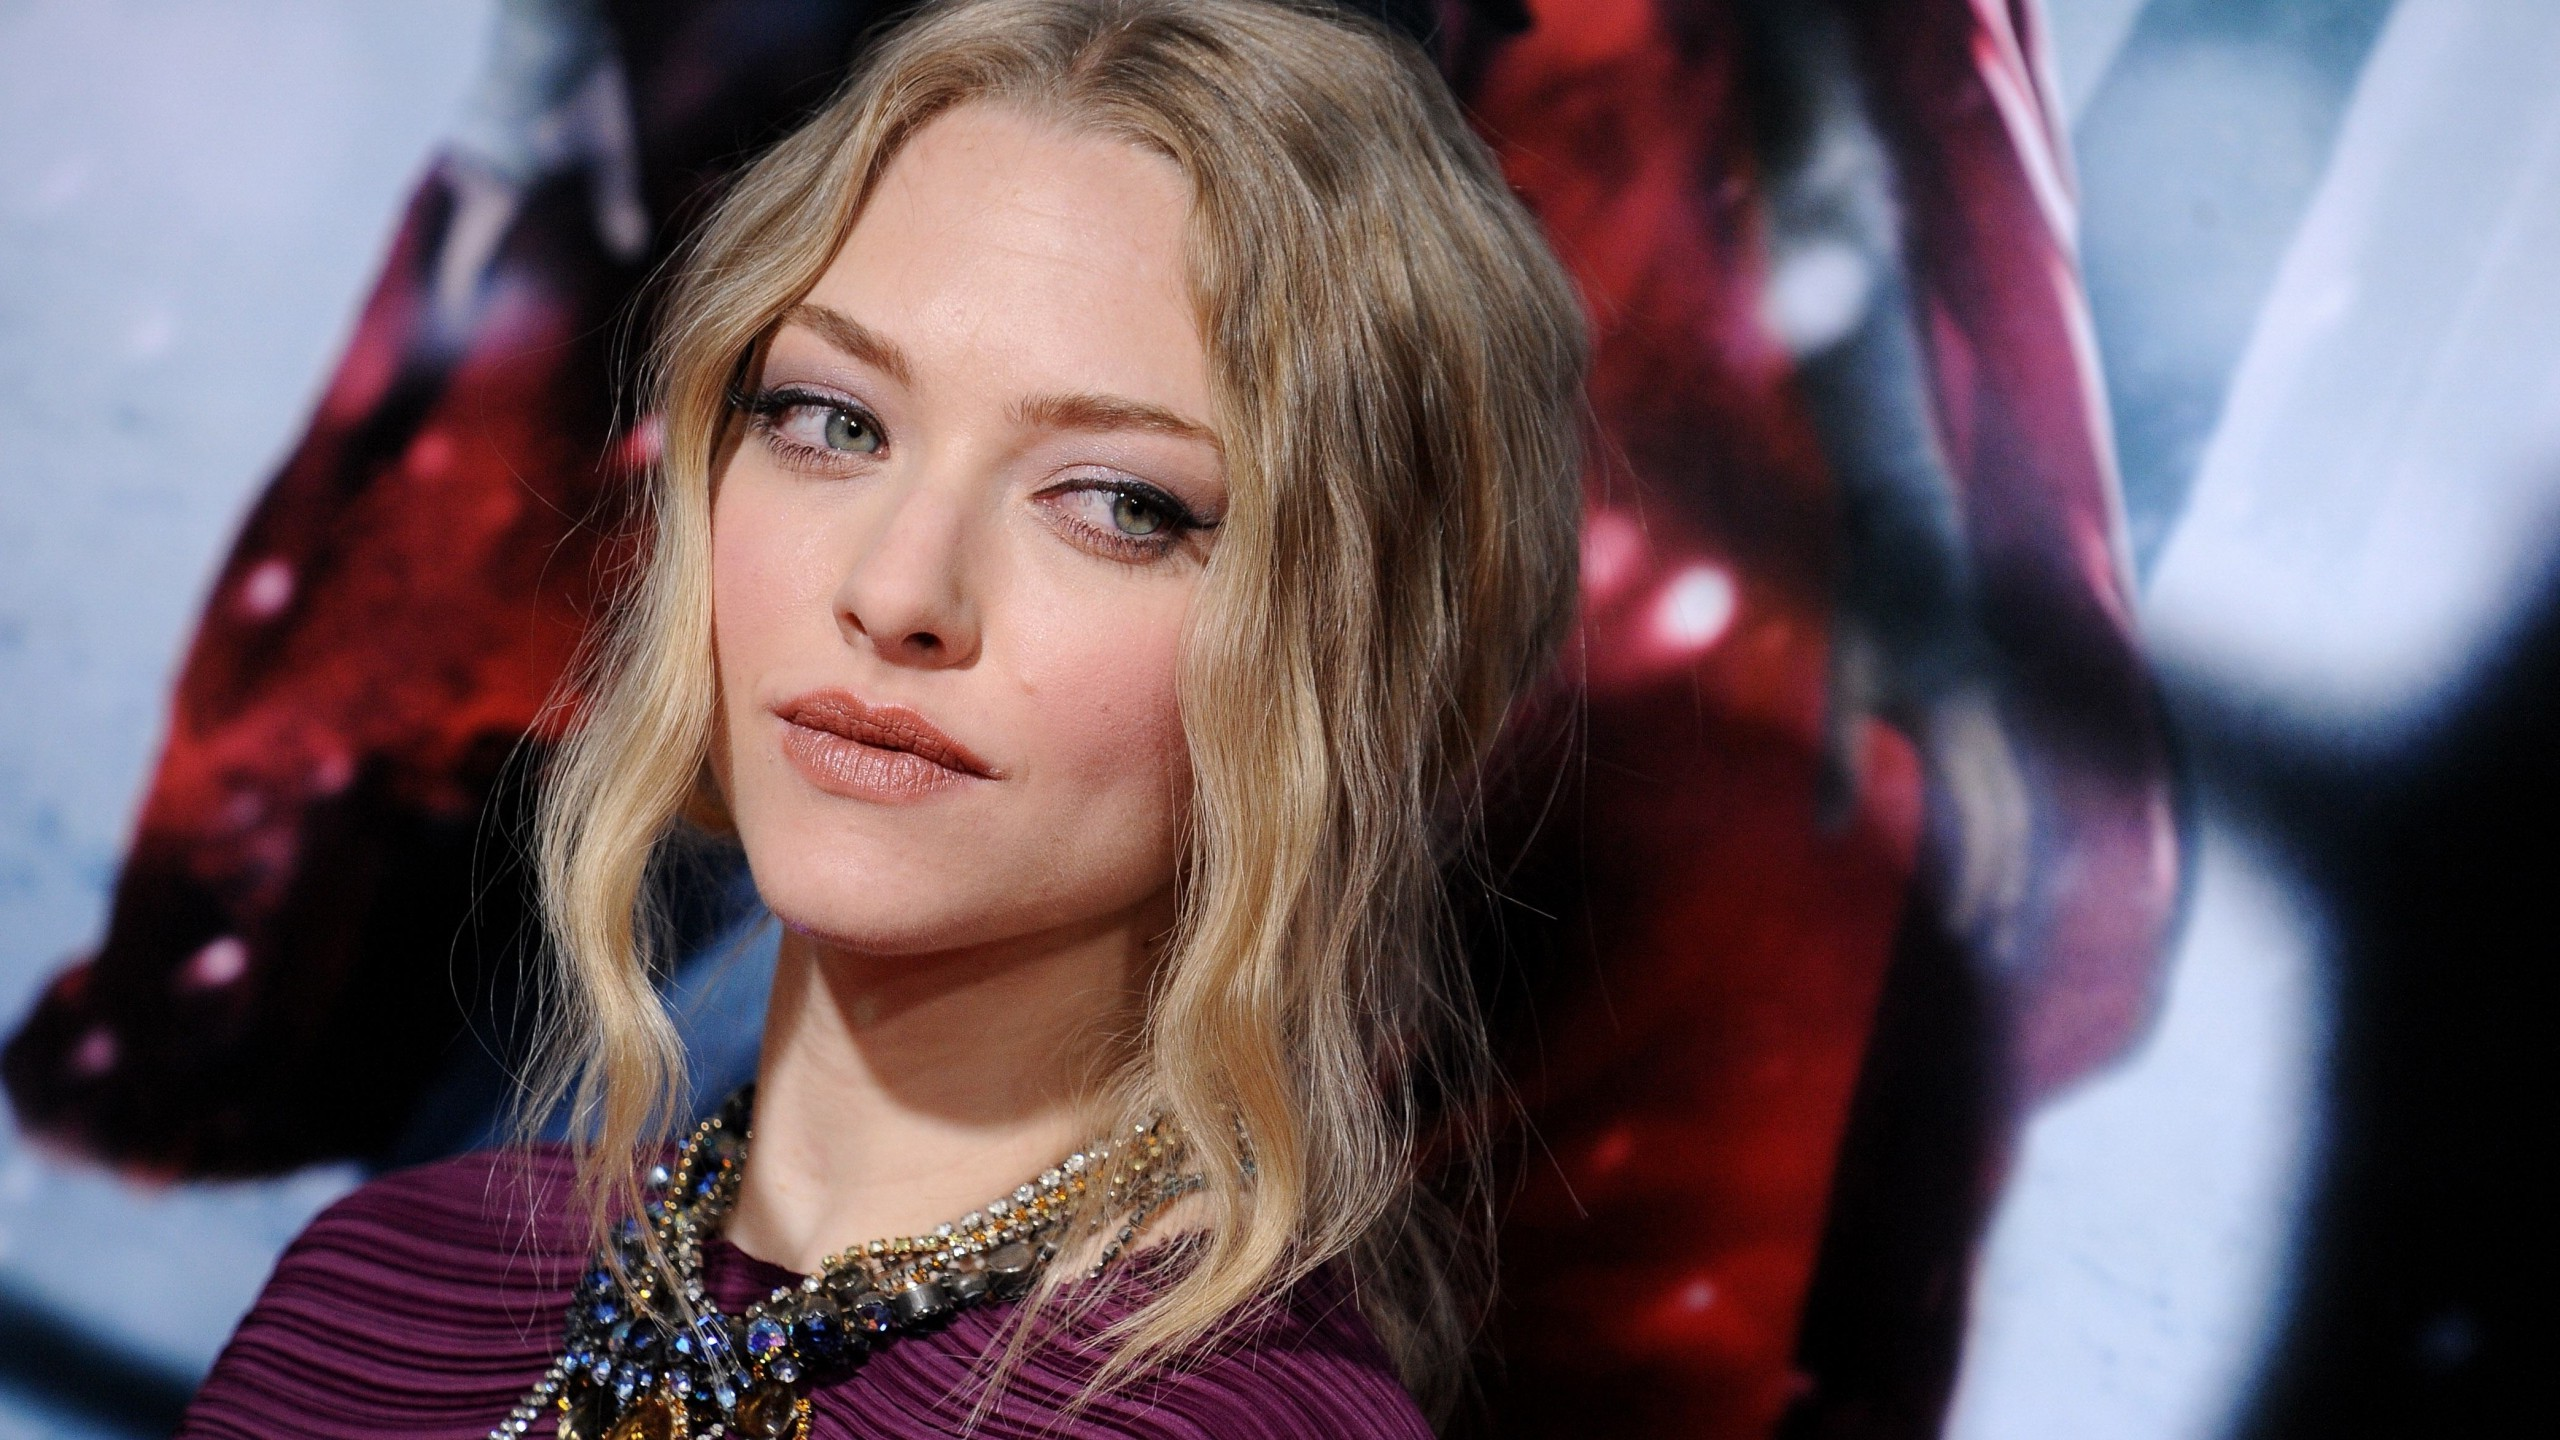 Amanda Seyfried Beautiful Hd Look Mobile Download Free Photos